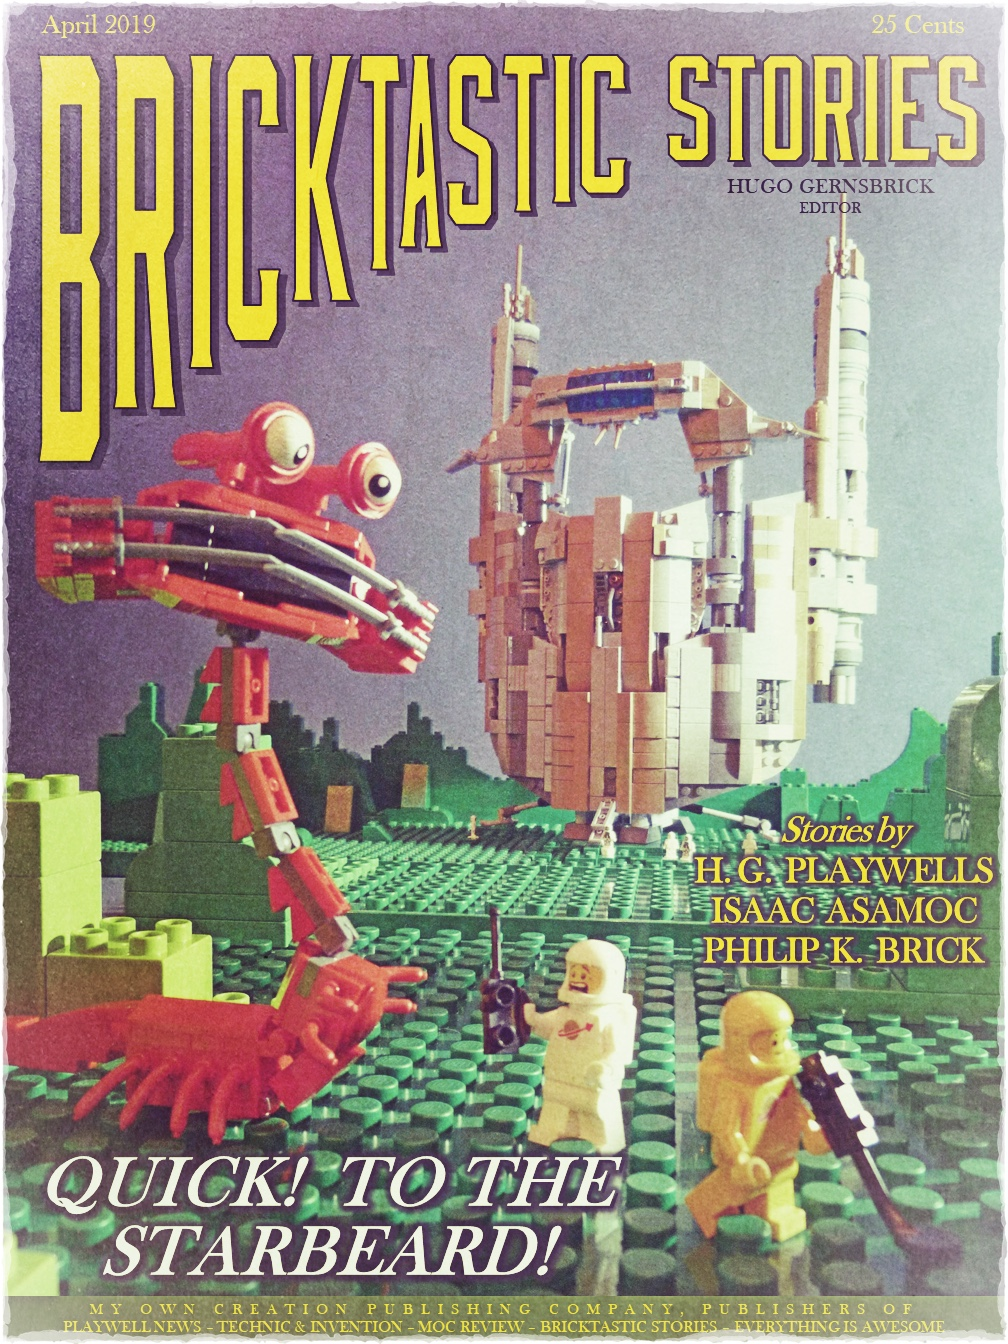 Bricktastic Stories.jpg